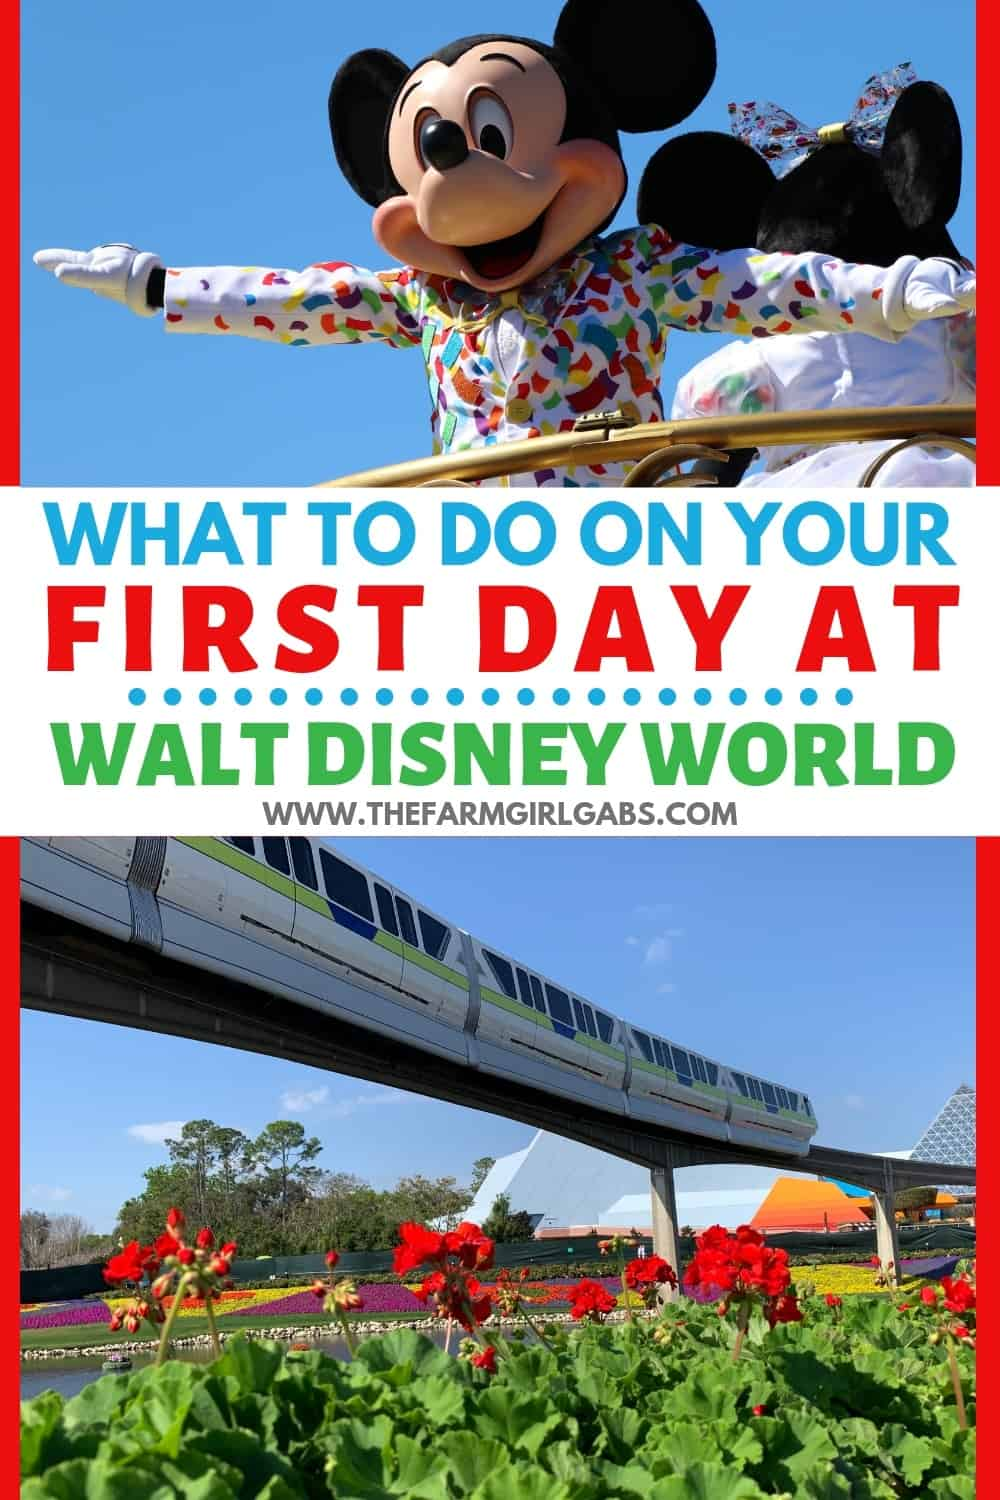 What should you do On your first day at Disney World? Take some time to enjoy these enjoyable and relaxing must-do Walt Disney World experiences.  #disneyworld #disneyplanning #disneytips